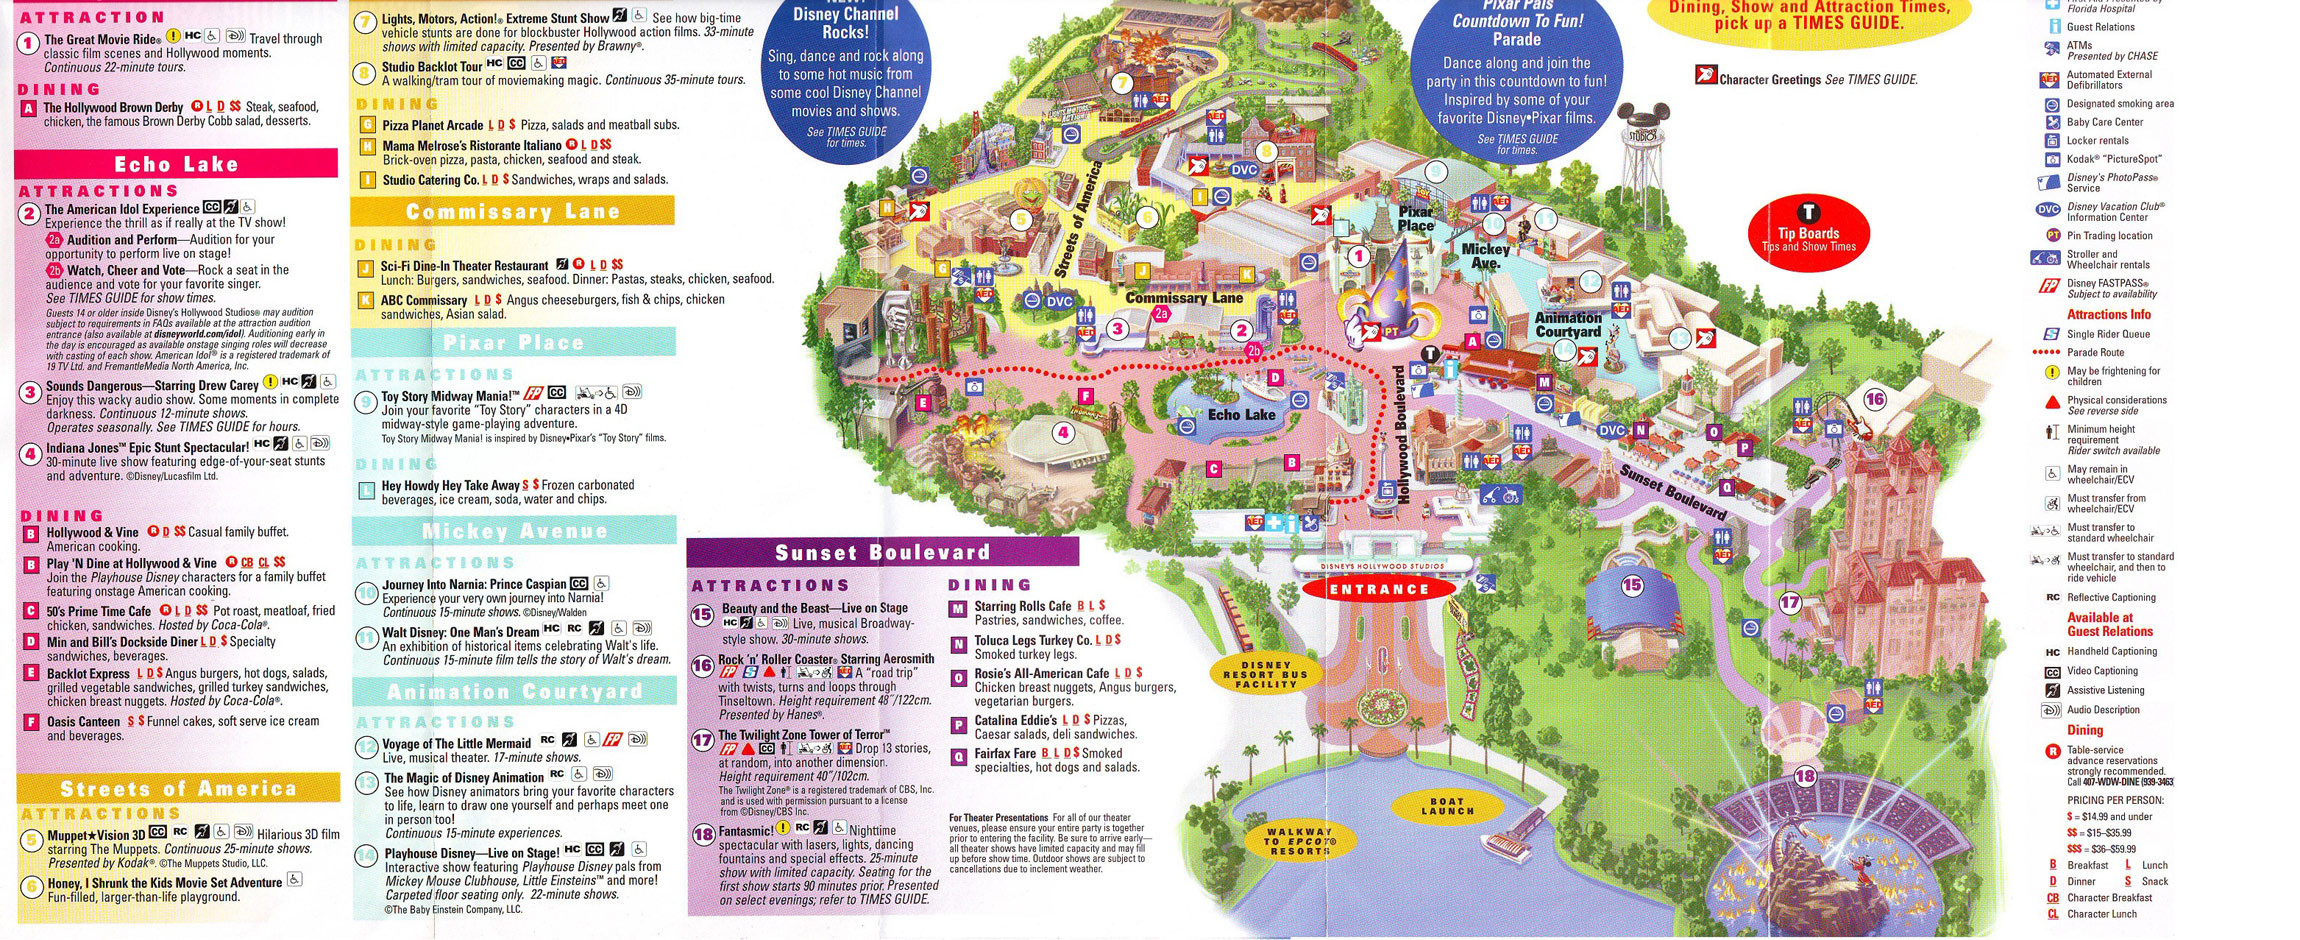 Printable Map Hollywood Studios Lovely Map Disney World Hollywood Studios Yuehu